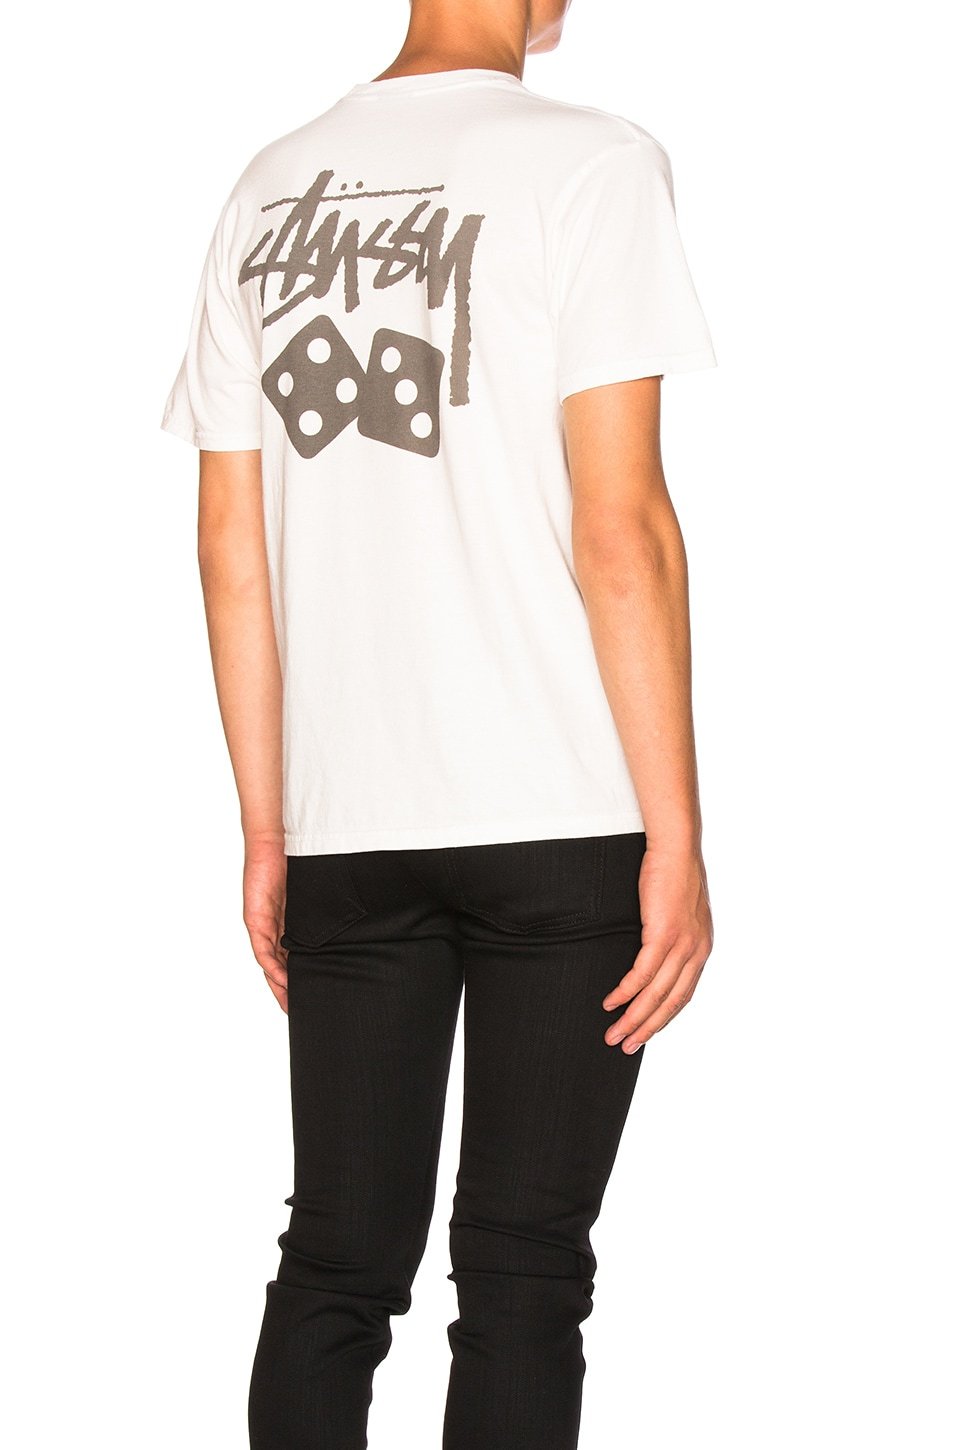 Dice Tee by Stussy